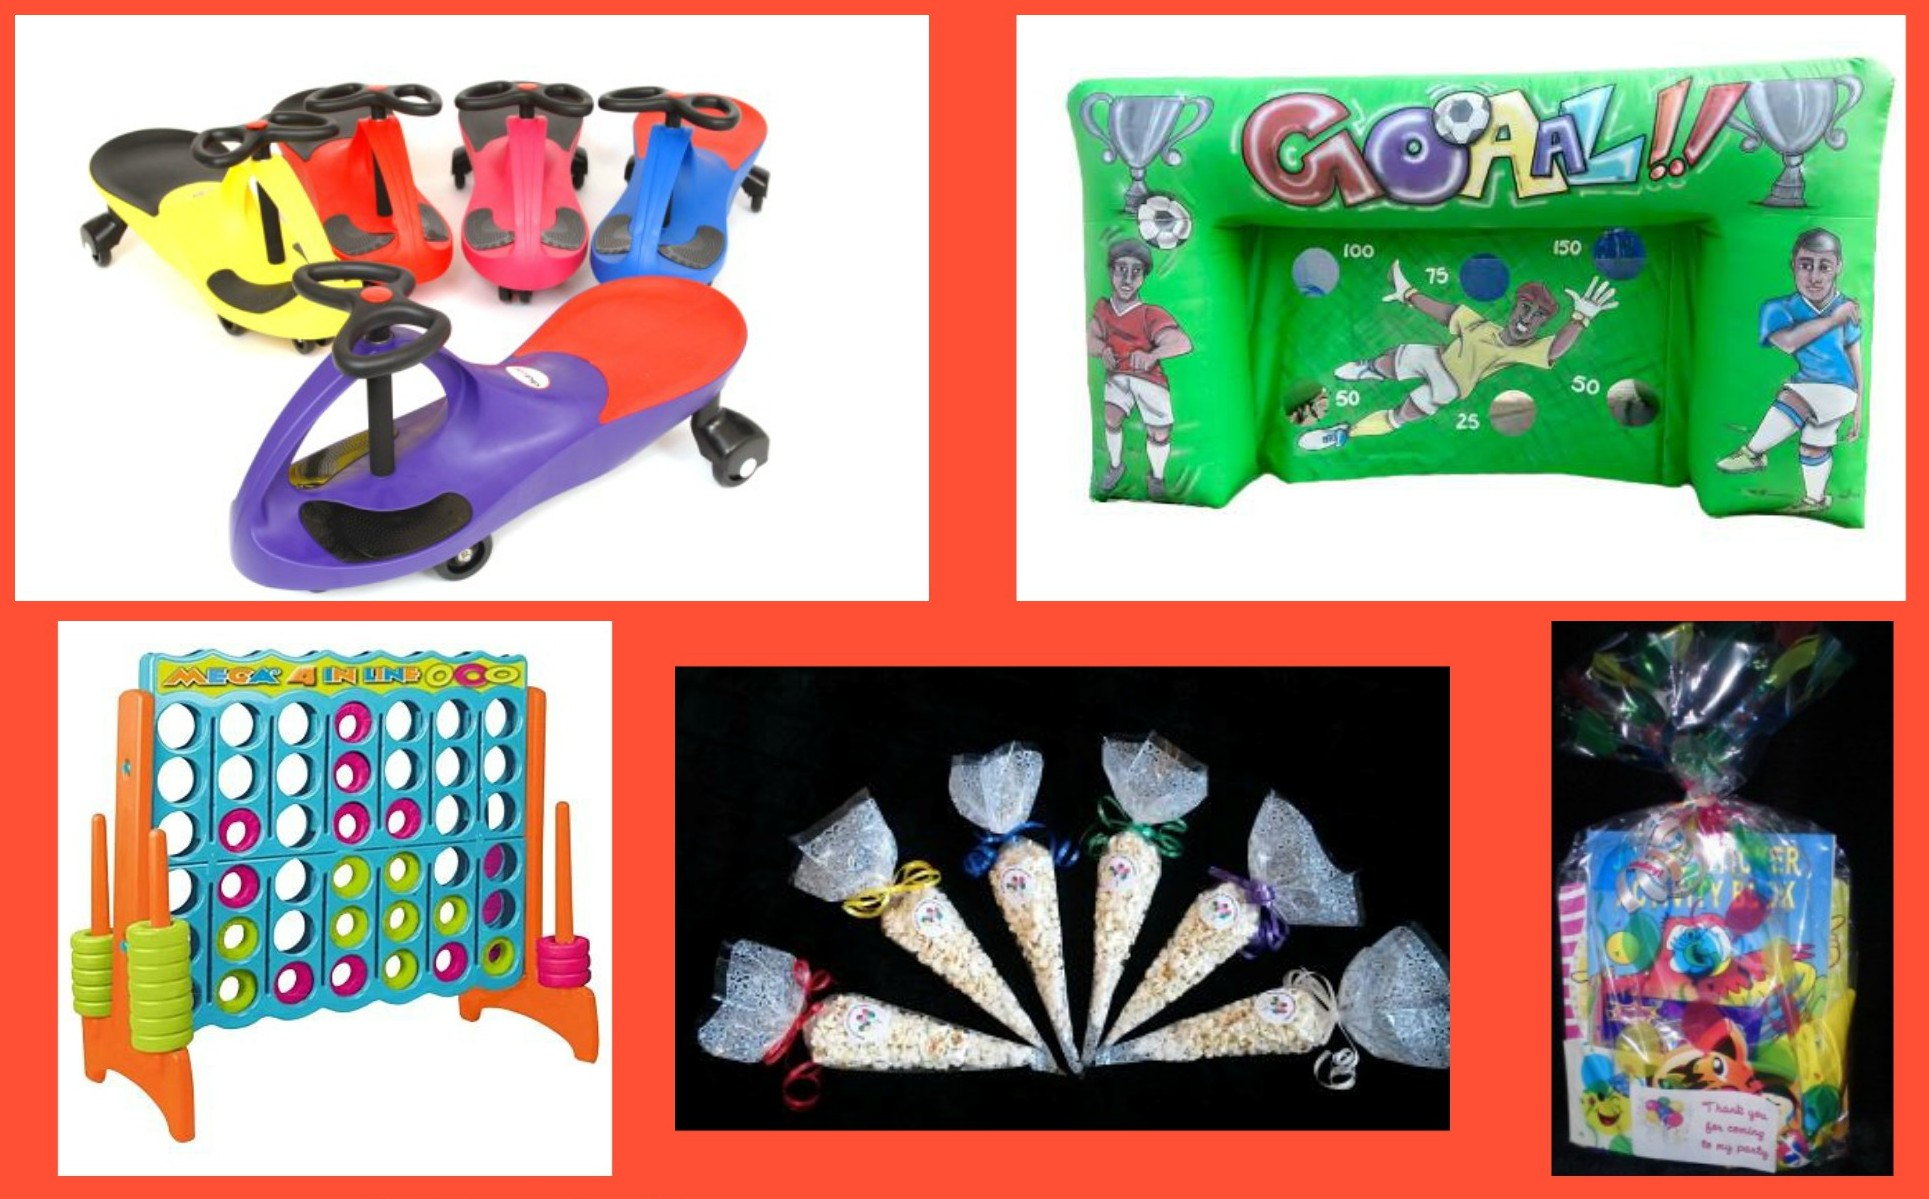 Over 5's Complete Party Package